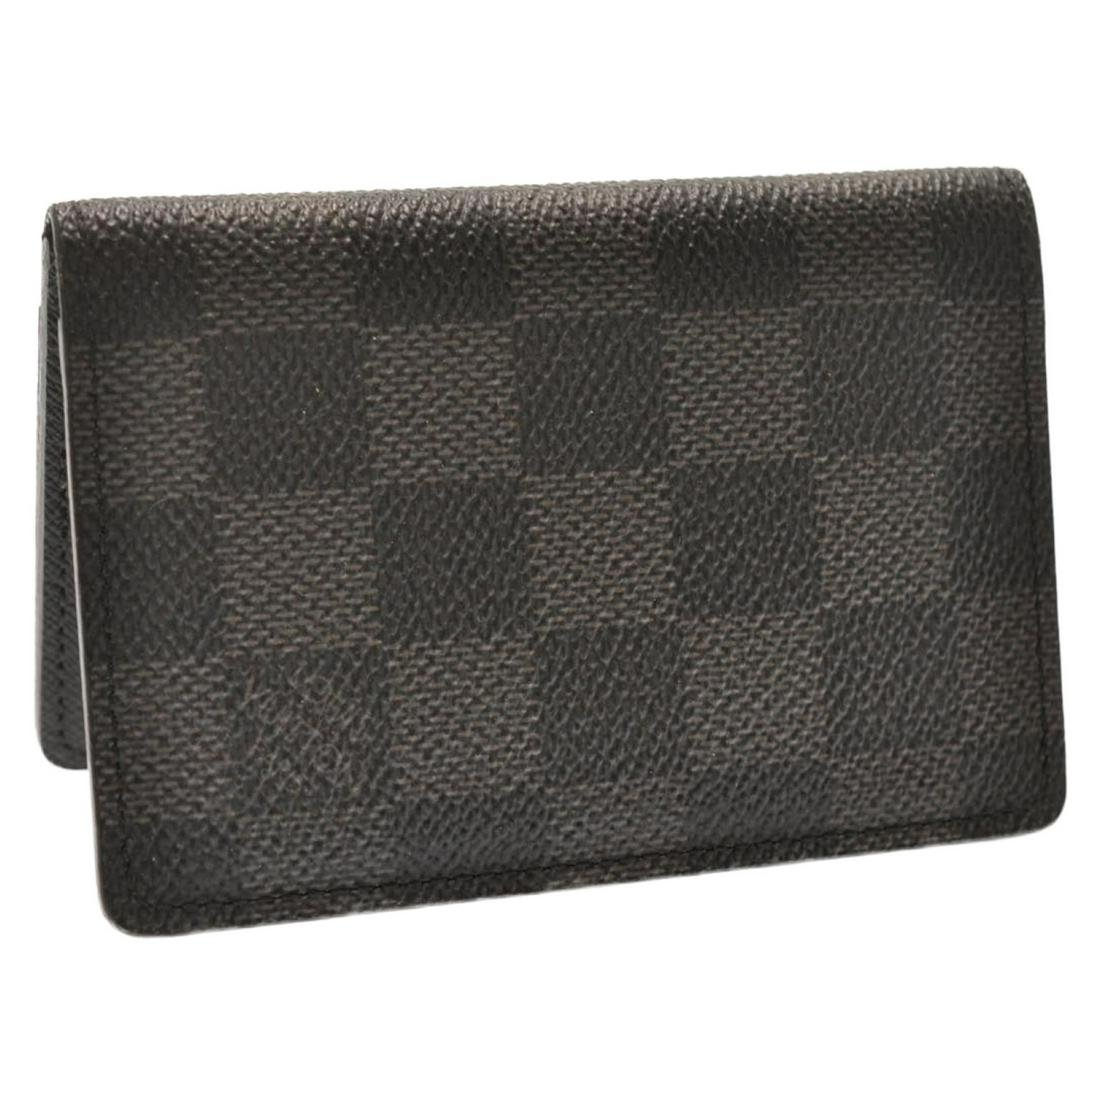 Authentic LOUIS VUITTON Damier Graphite Canvas Card